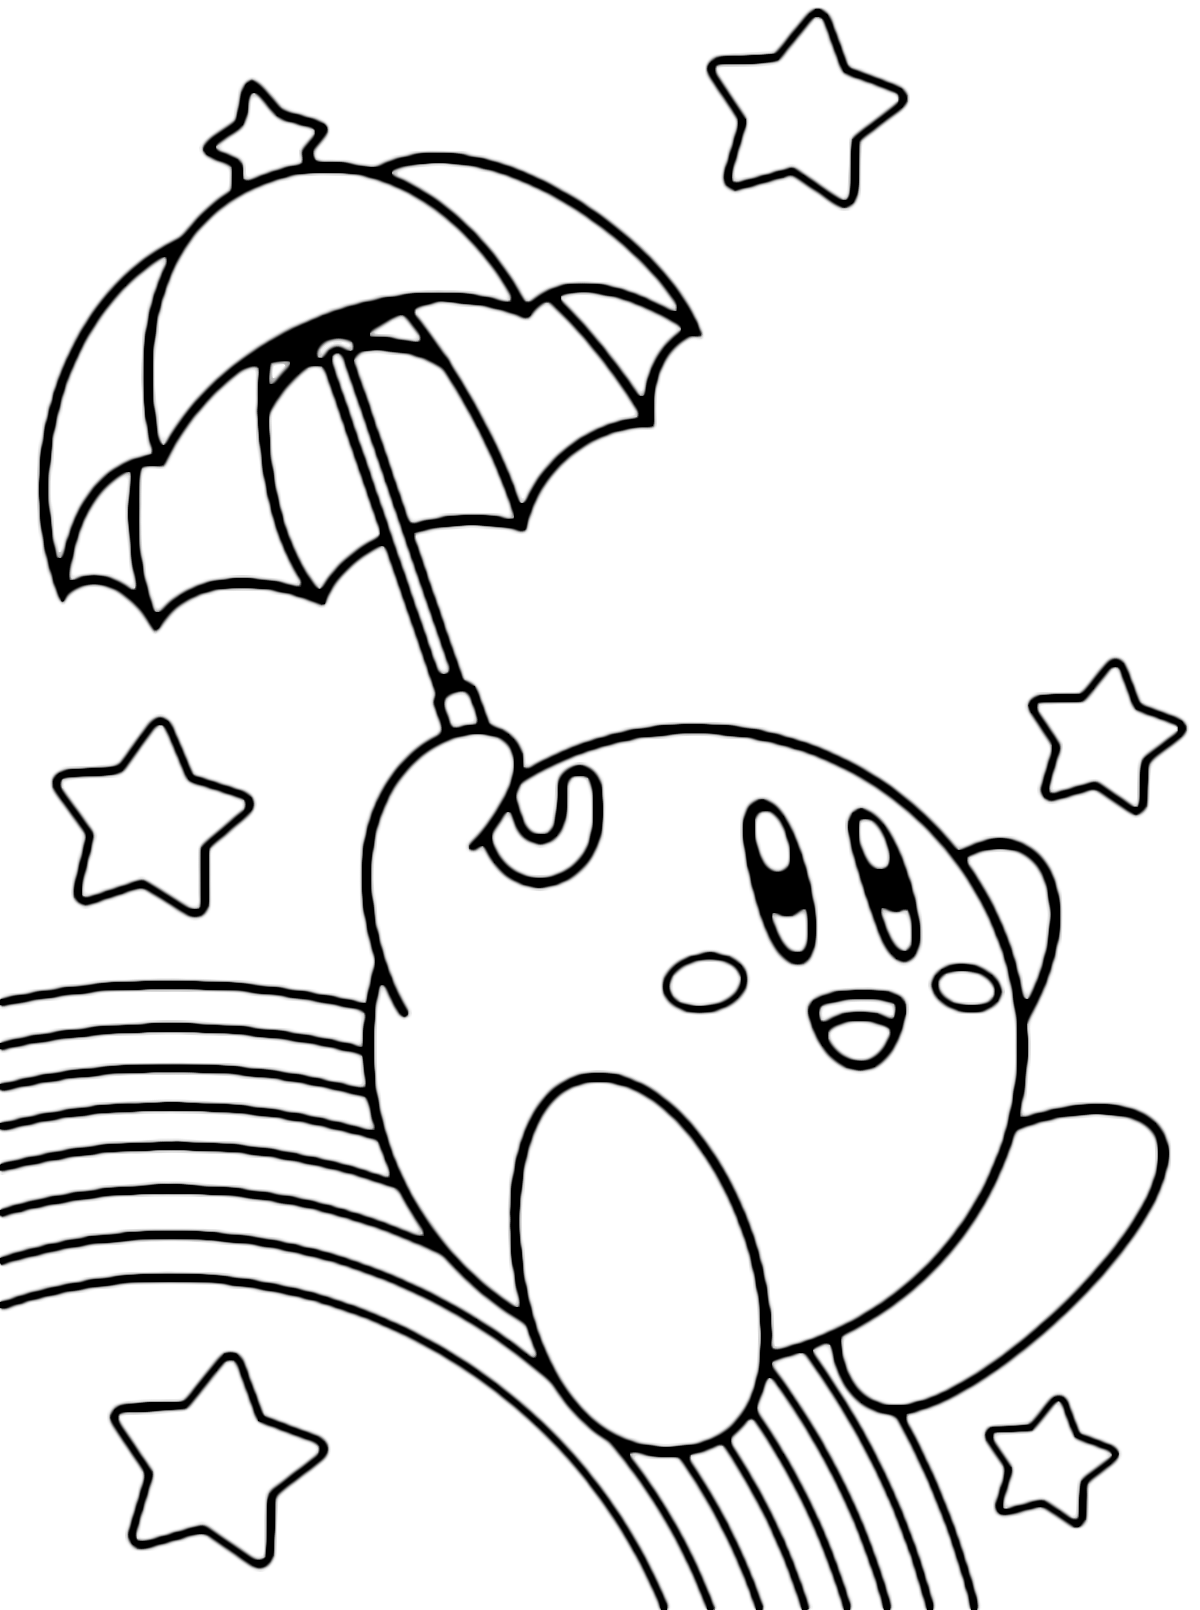 Pikmin 3 coloring pages - Download